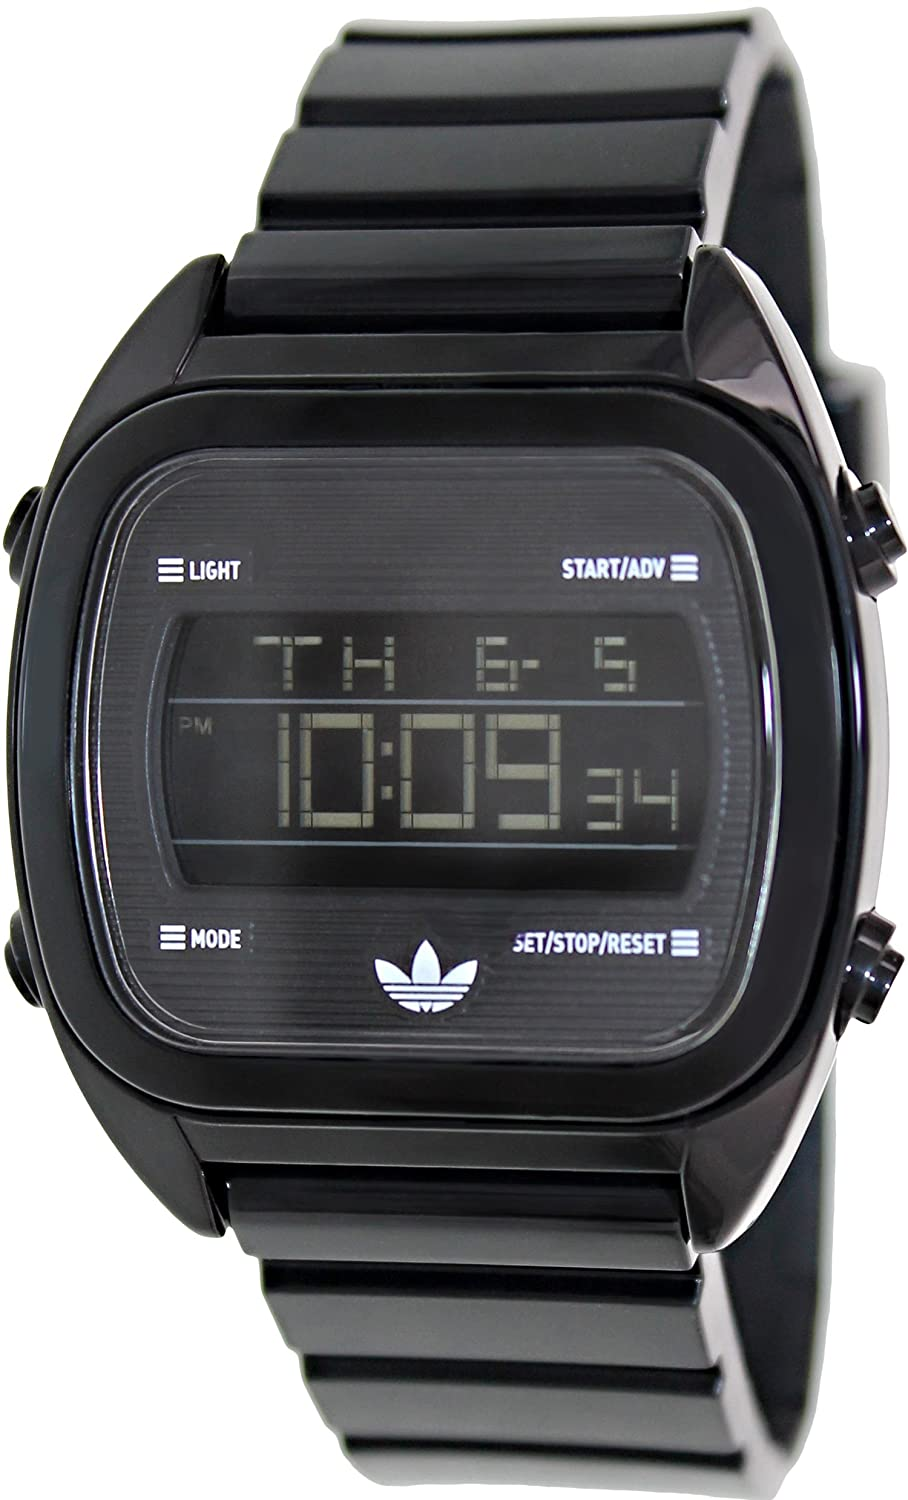 Amazon.com: Adidas Originals Sydney Digital Unisex watch #ADH2726: Adidas: Watches